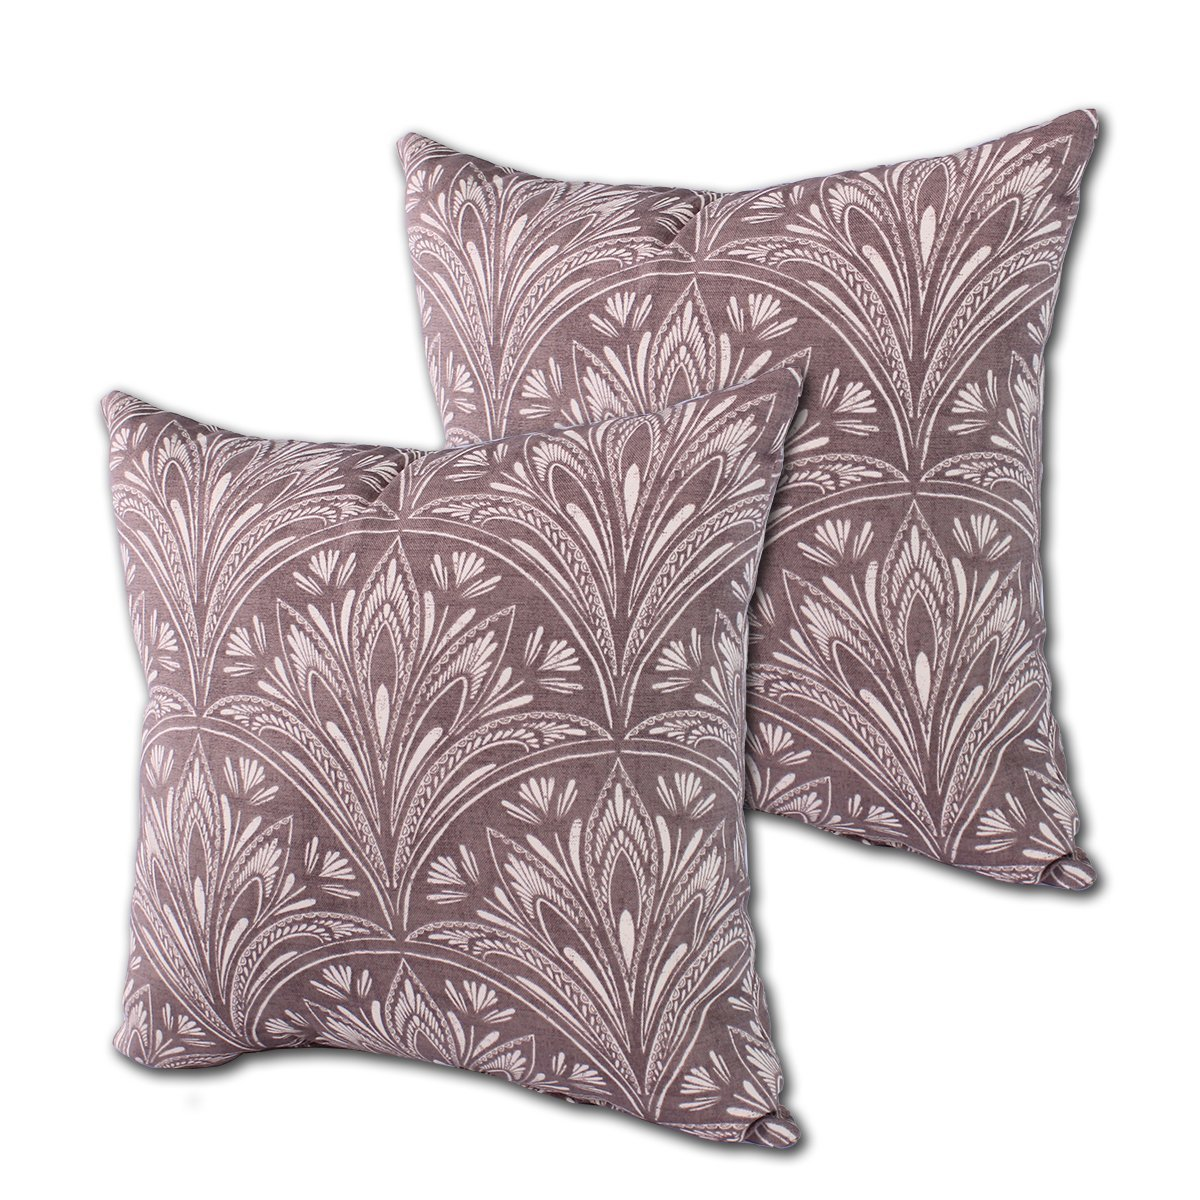 "Set of 2 Indoor/Outdoor Throw Pillow 16"" x 16"" x 4"" in Polyester Fabric Taupe Leaf by Comfort Classics Inc."